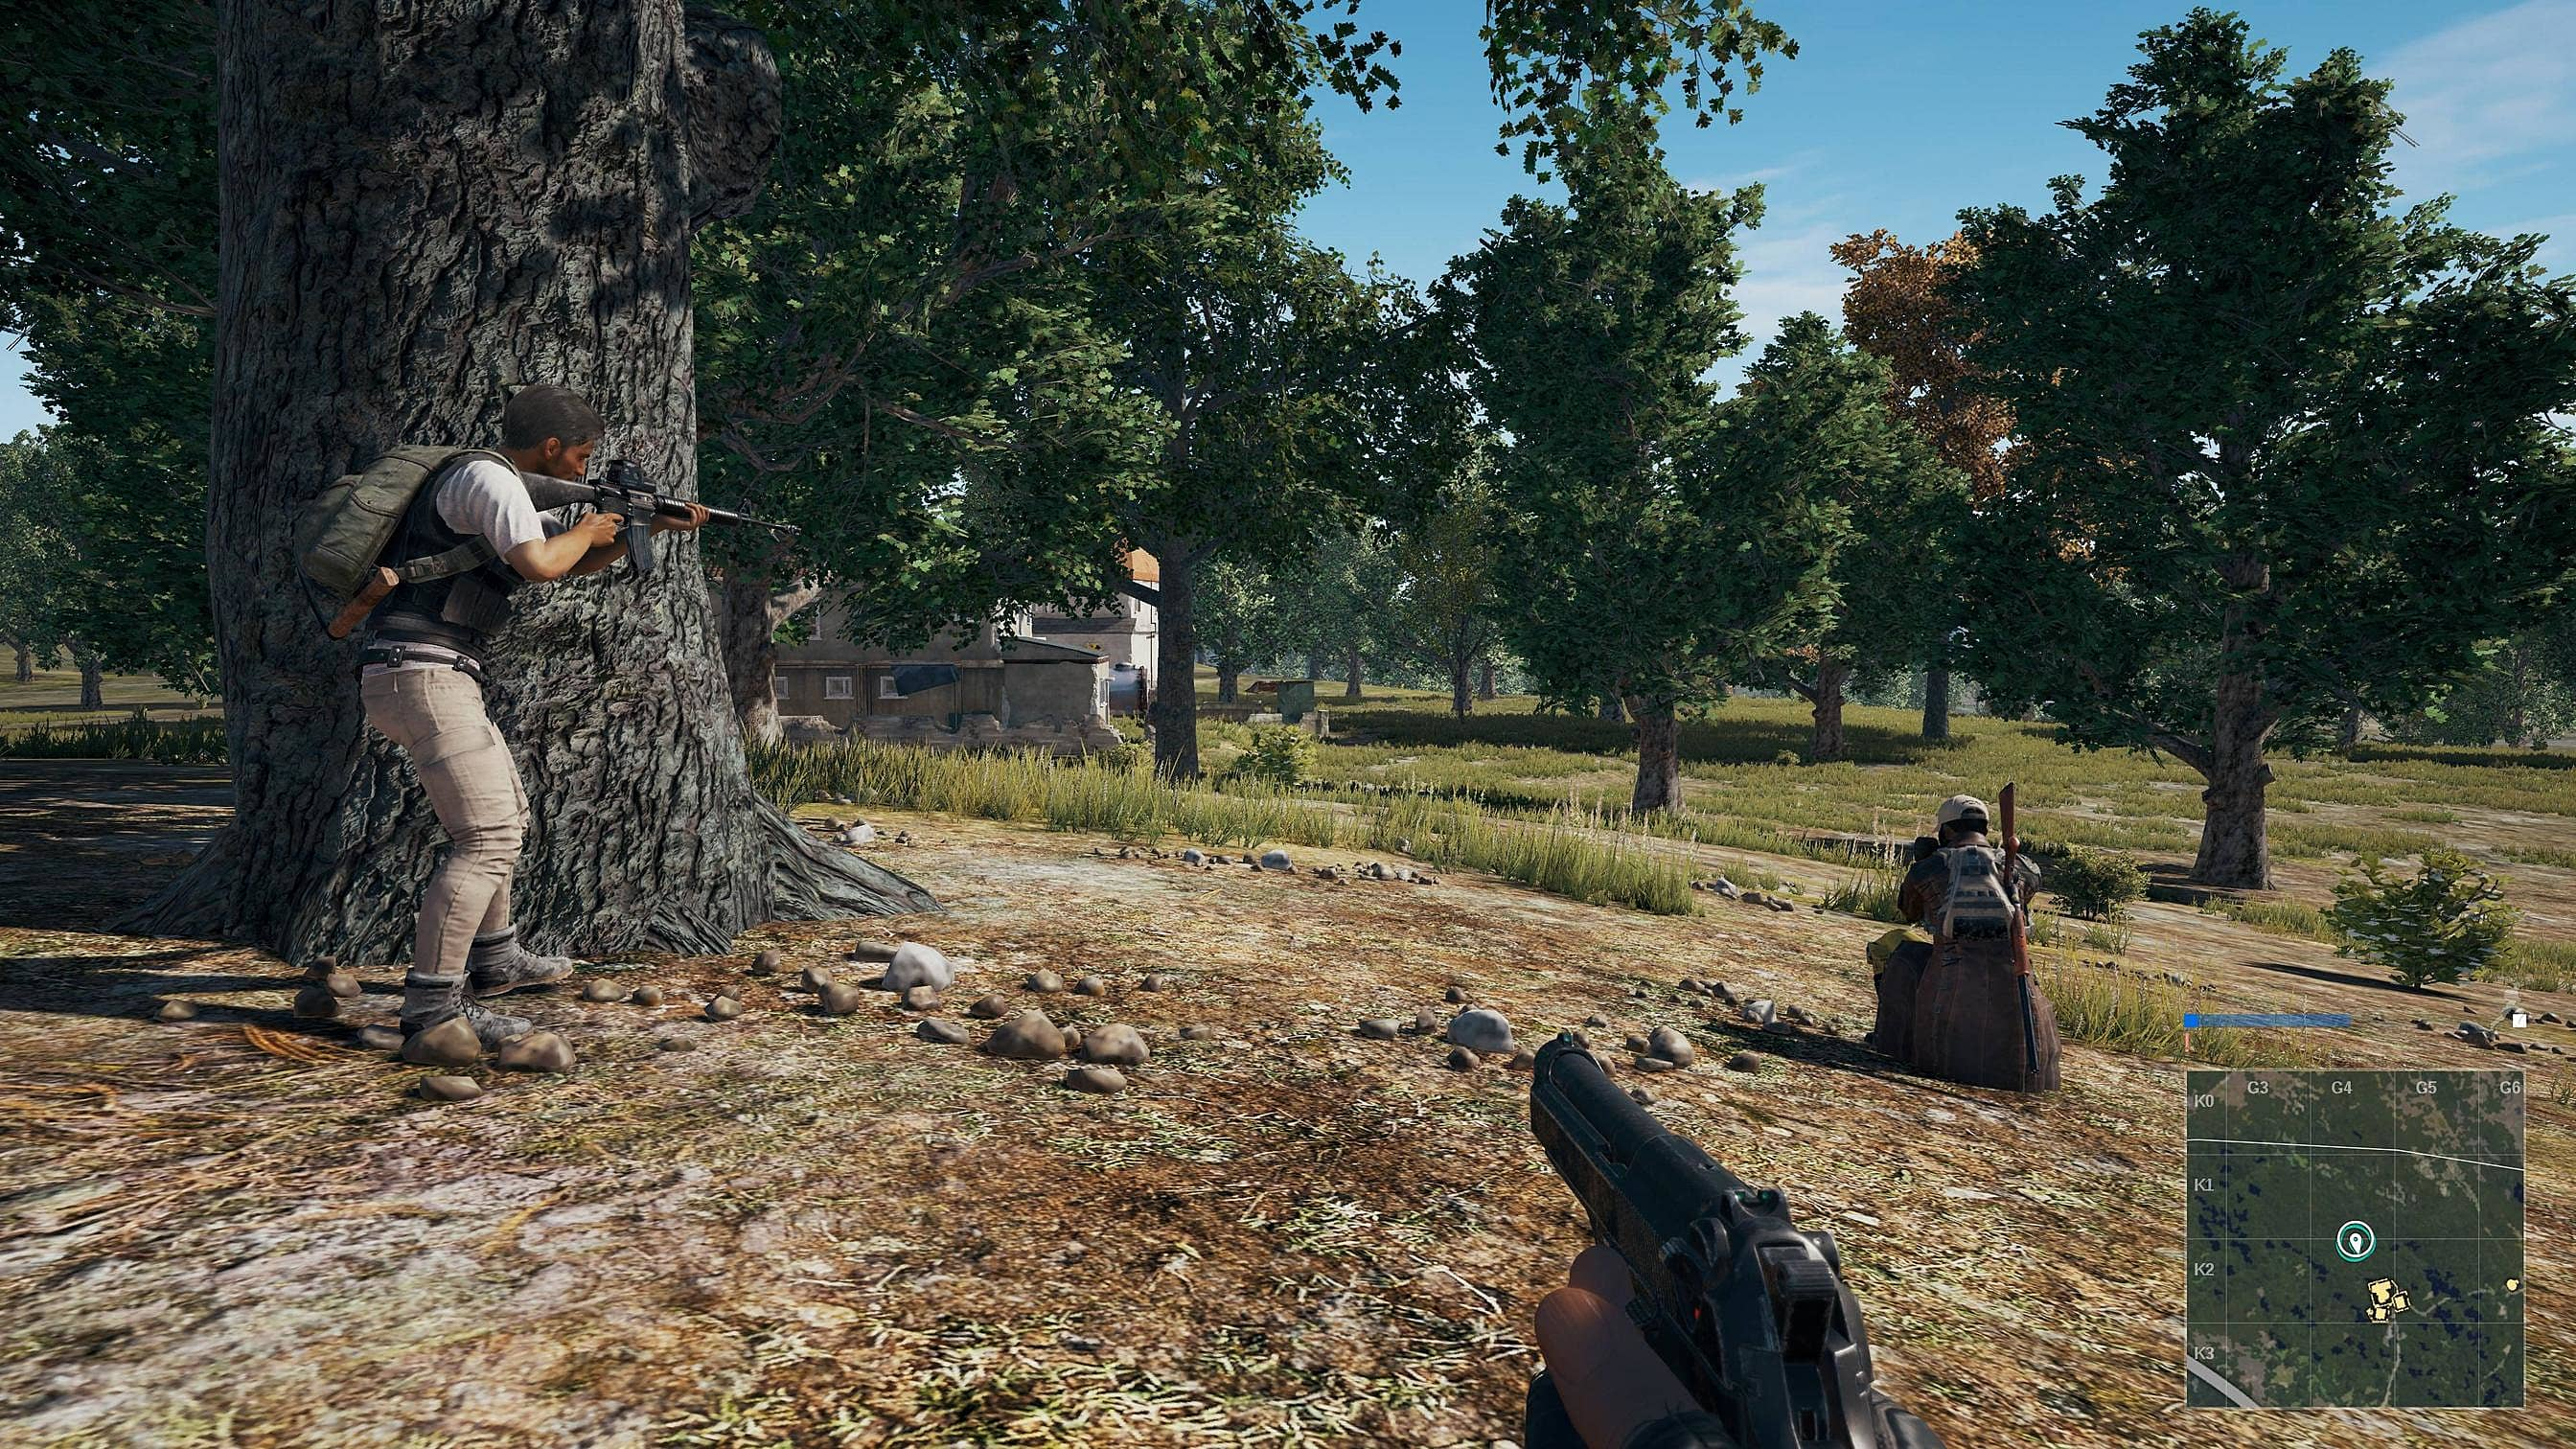 Pubg Gameplay On Line: Top 5 Reasons PUBG's Battle Royale Is A Better Experience